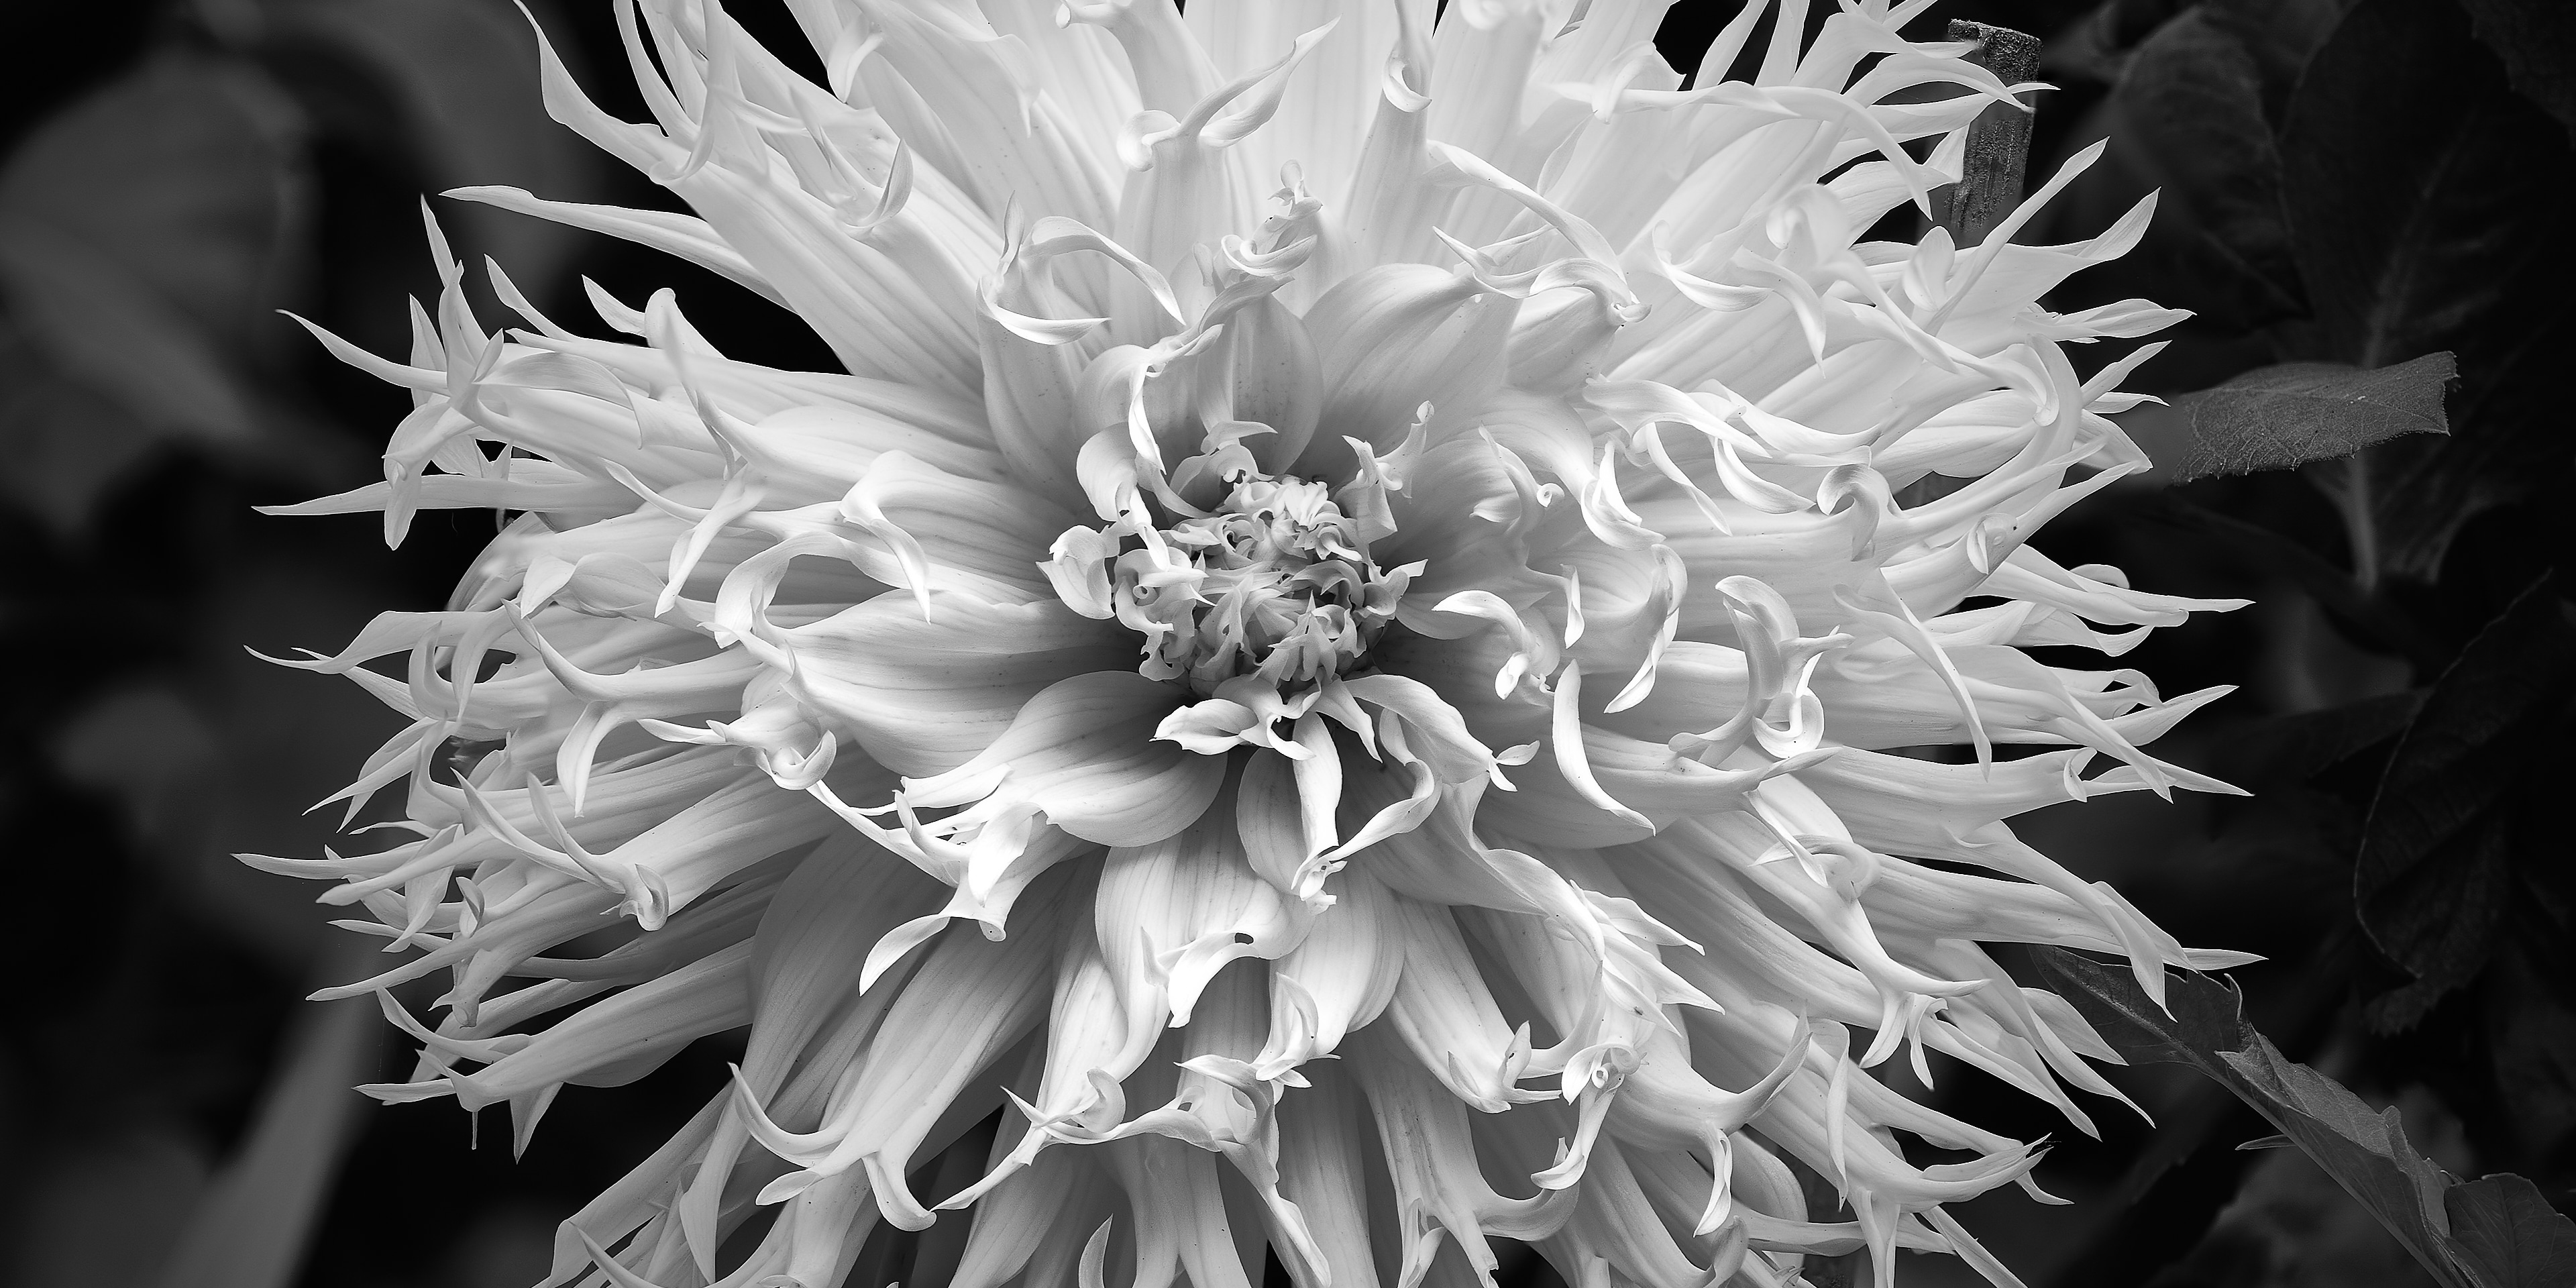 Focus Shift with Nikon Z7 - black and white conversion